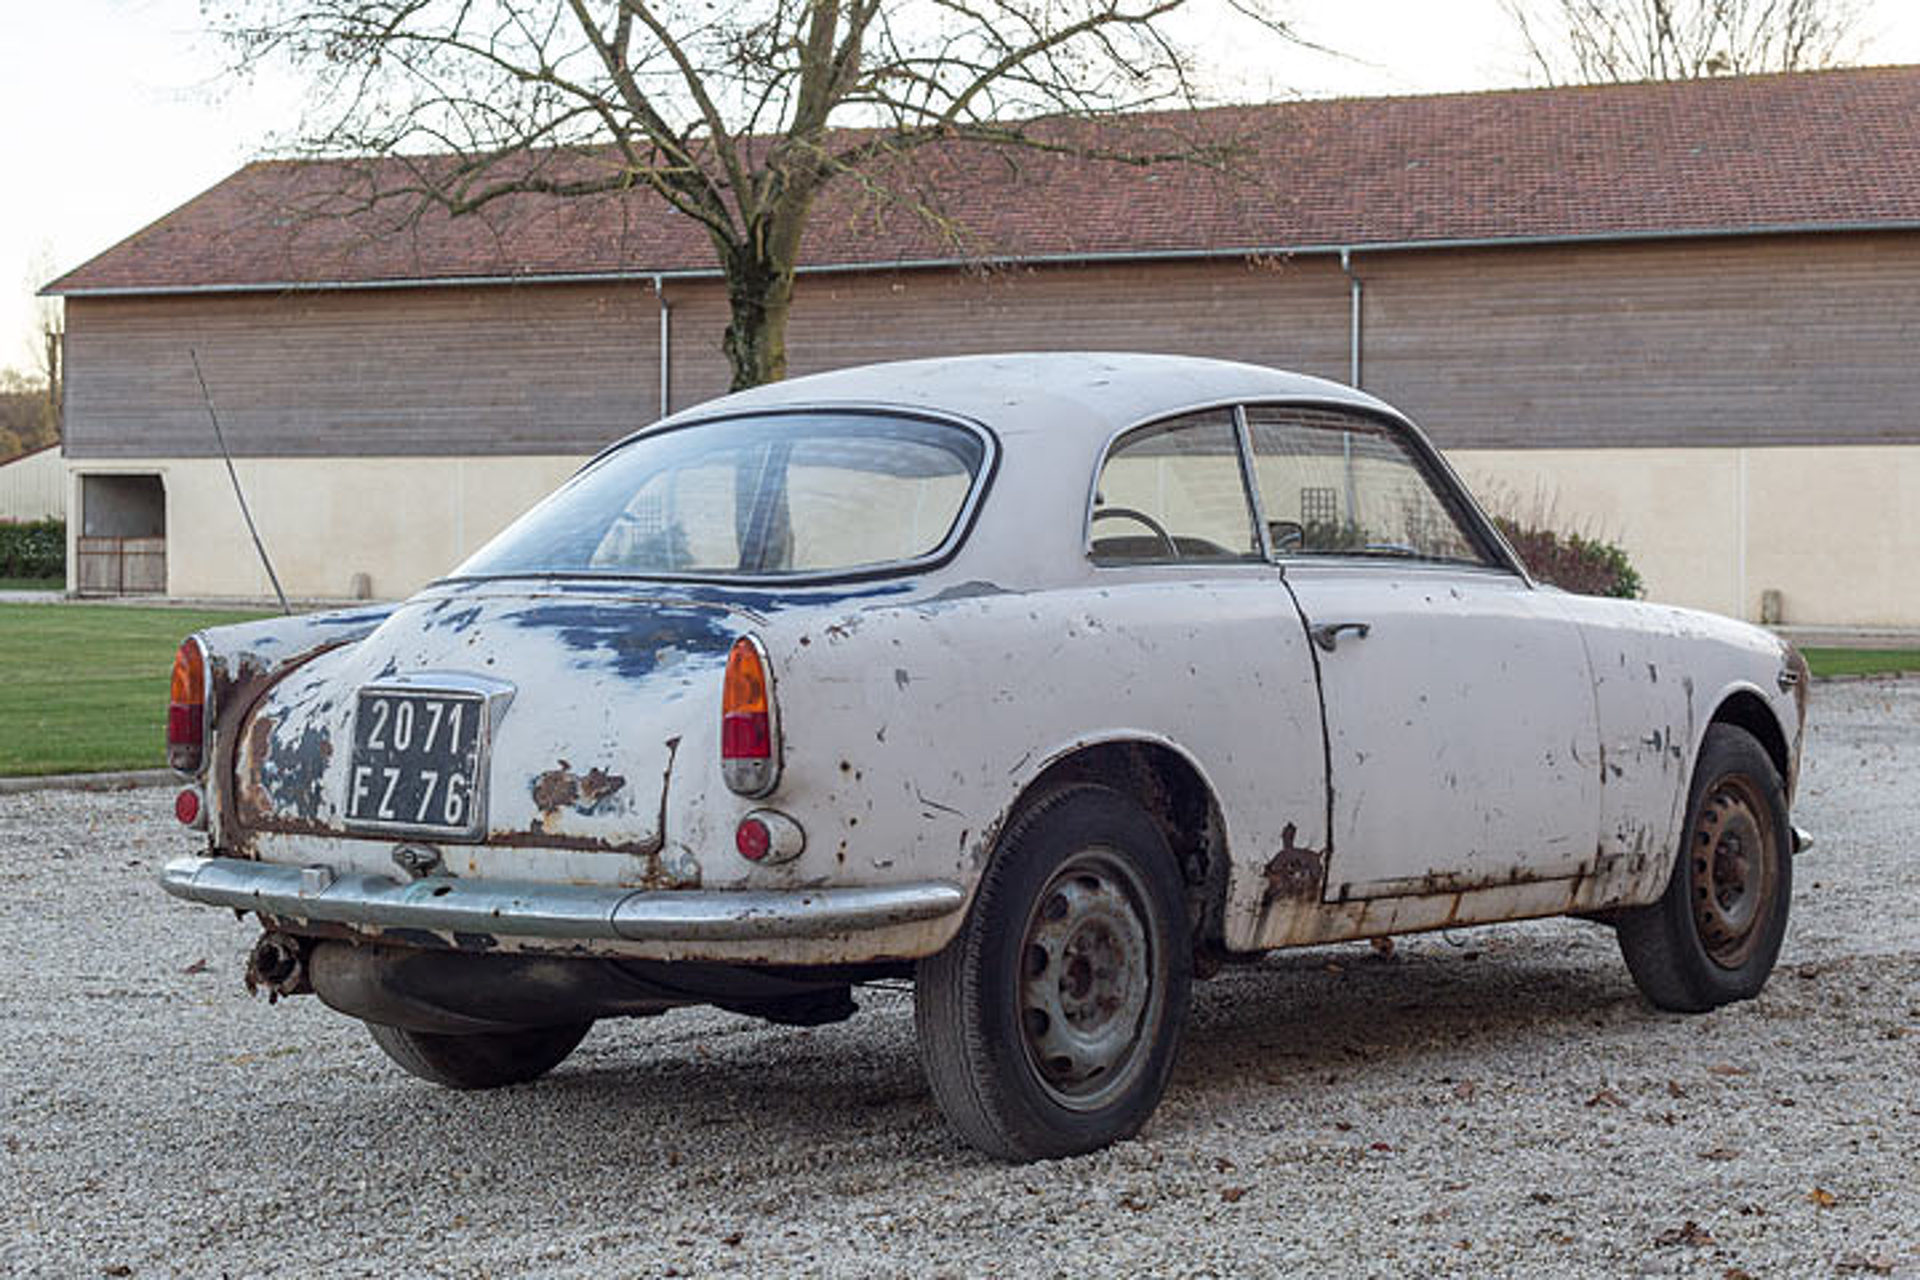 This '63 Alfa Romeo Barn Find is For Sale, Rust Included